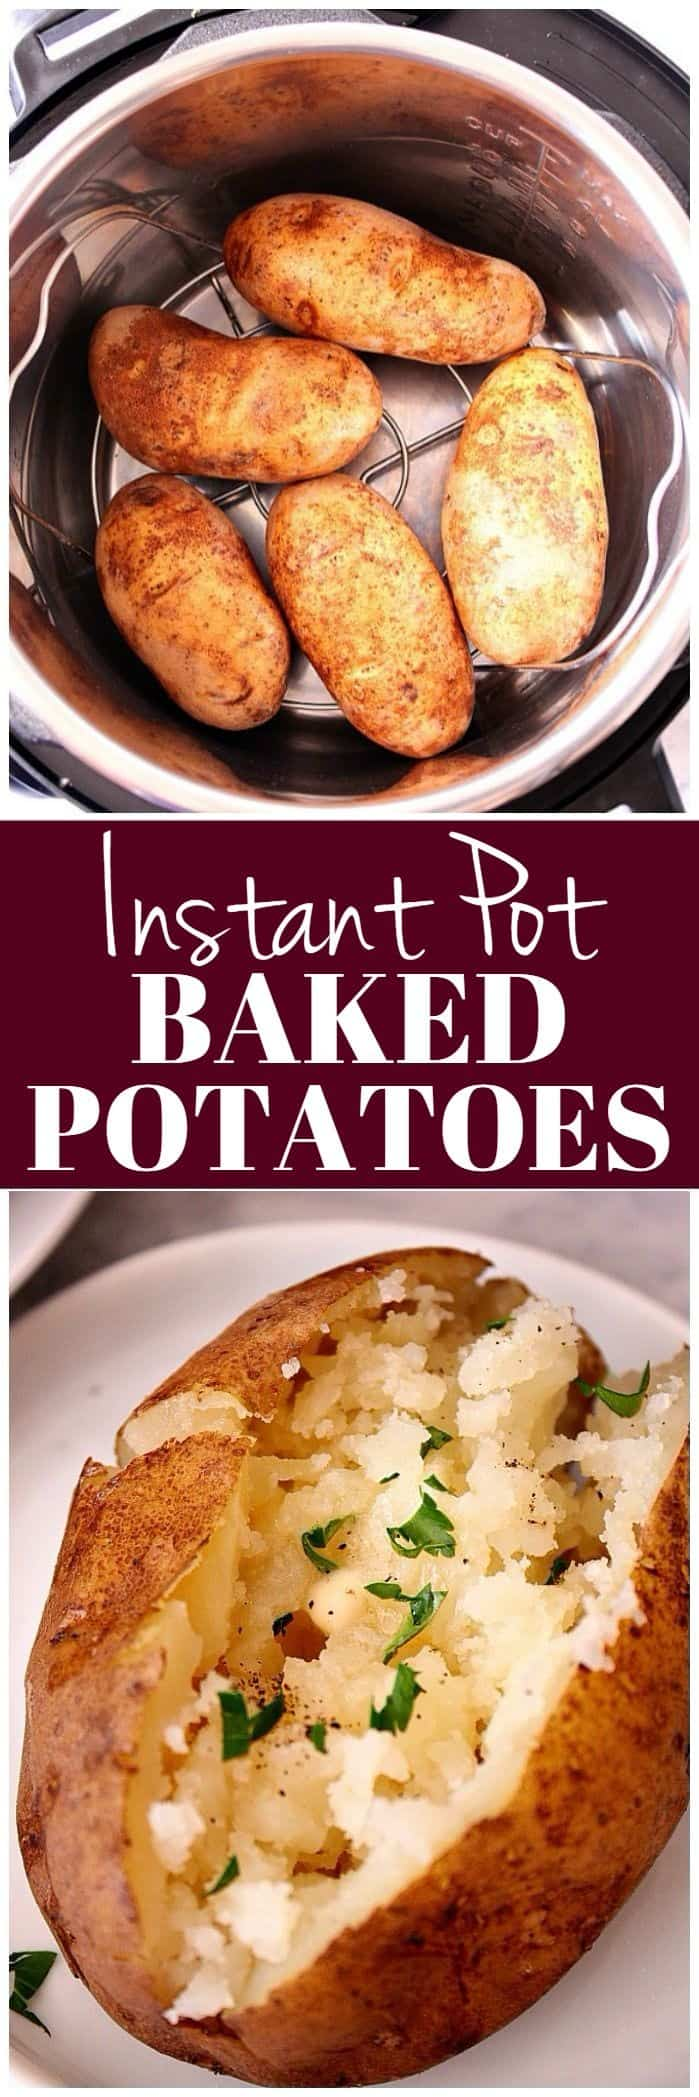 instant pot pressure cooker baked potatoes 1a Instant Pot Baked Potatoes Recipe